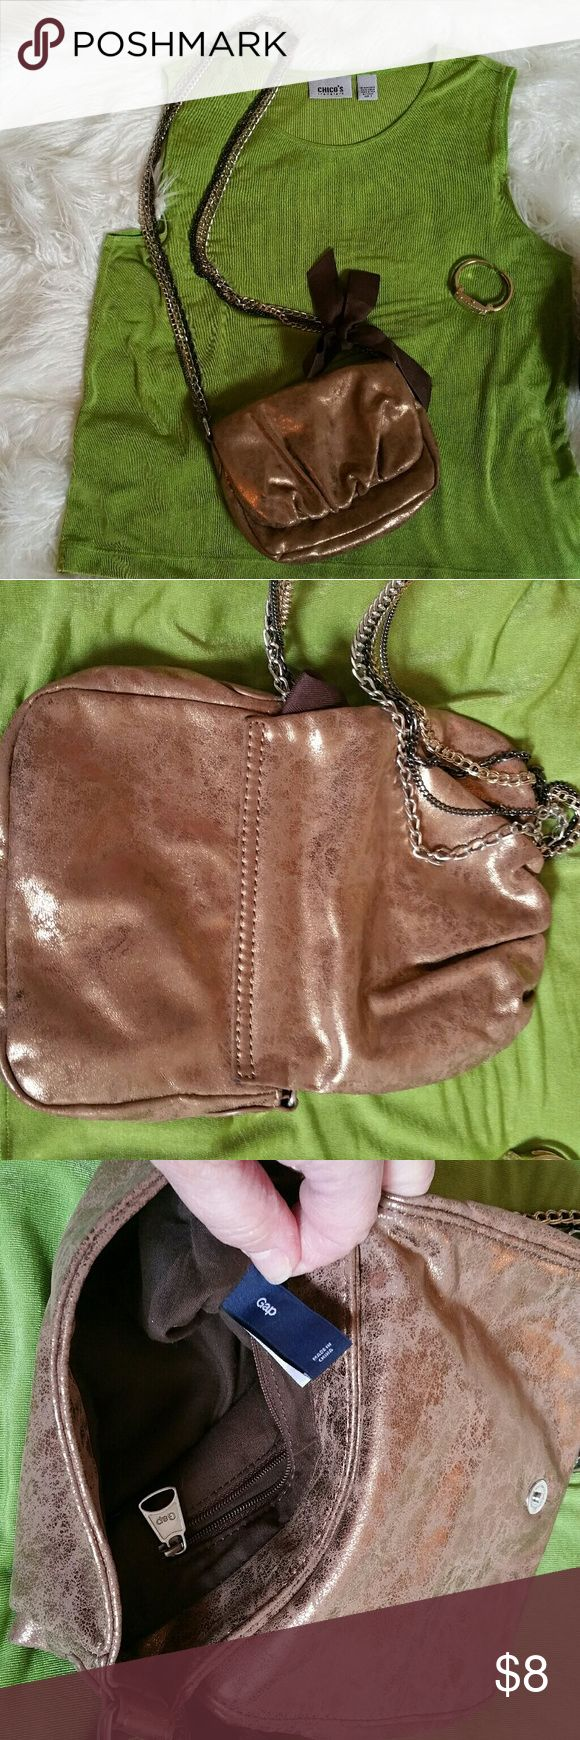 """Gap Crossbody Purse Classy Chic little Crossbody Gap purse. Great condition! 4 Chains and brown ribbion bow. BODY 7""""  8 1/2"""" GAP Bags Crossbody Bags"""